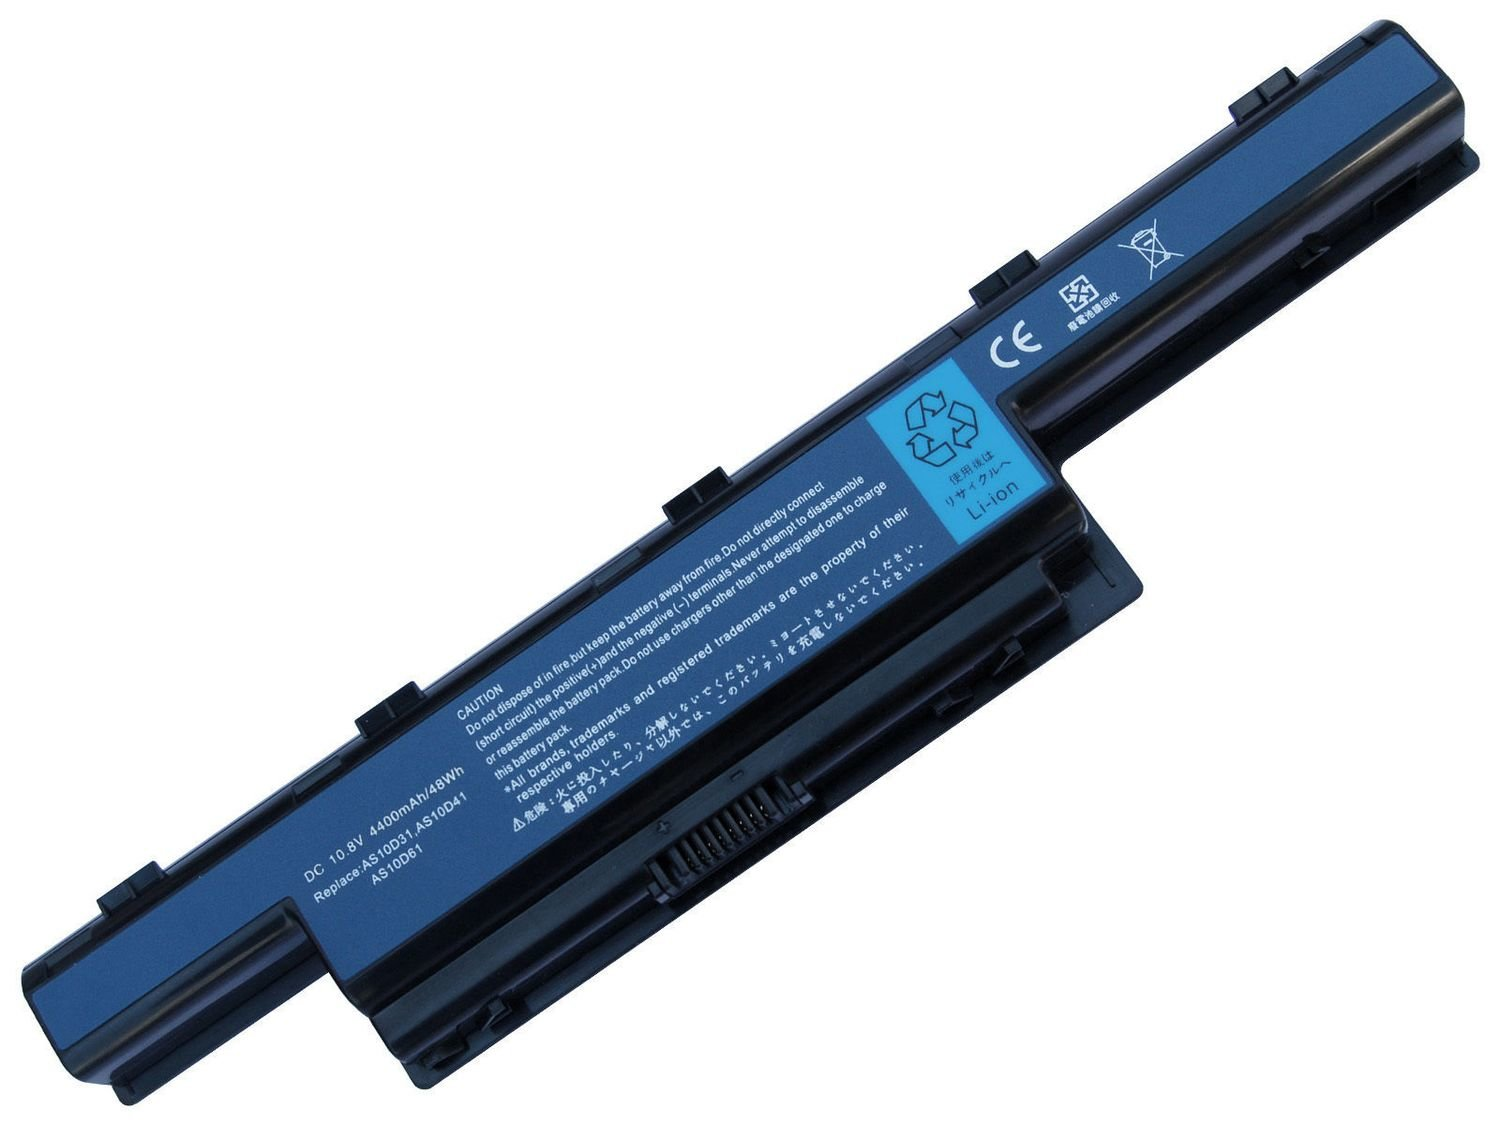 Acer Aspire 5333 5551G 5552 5552G compatible laptop battery